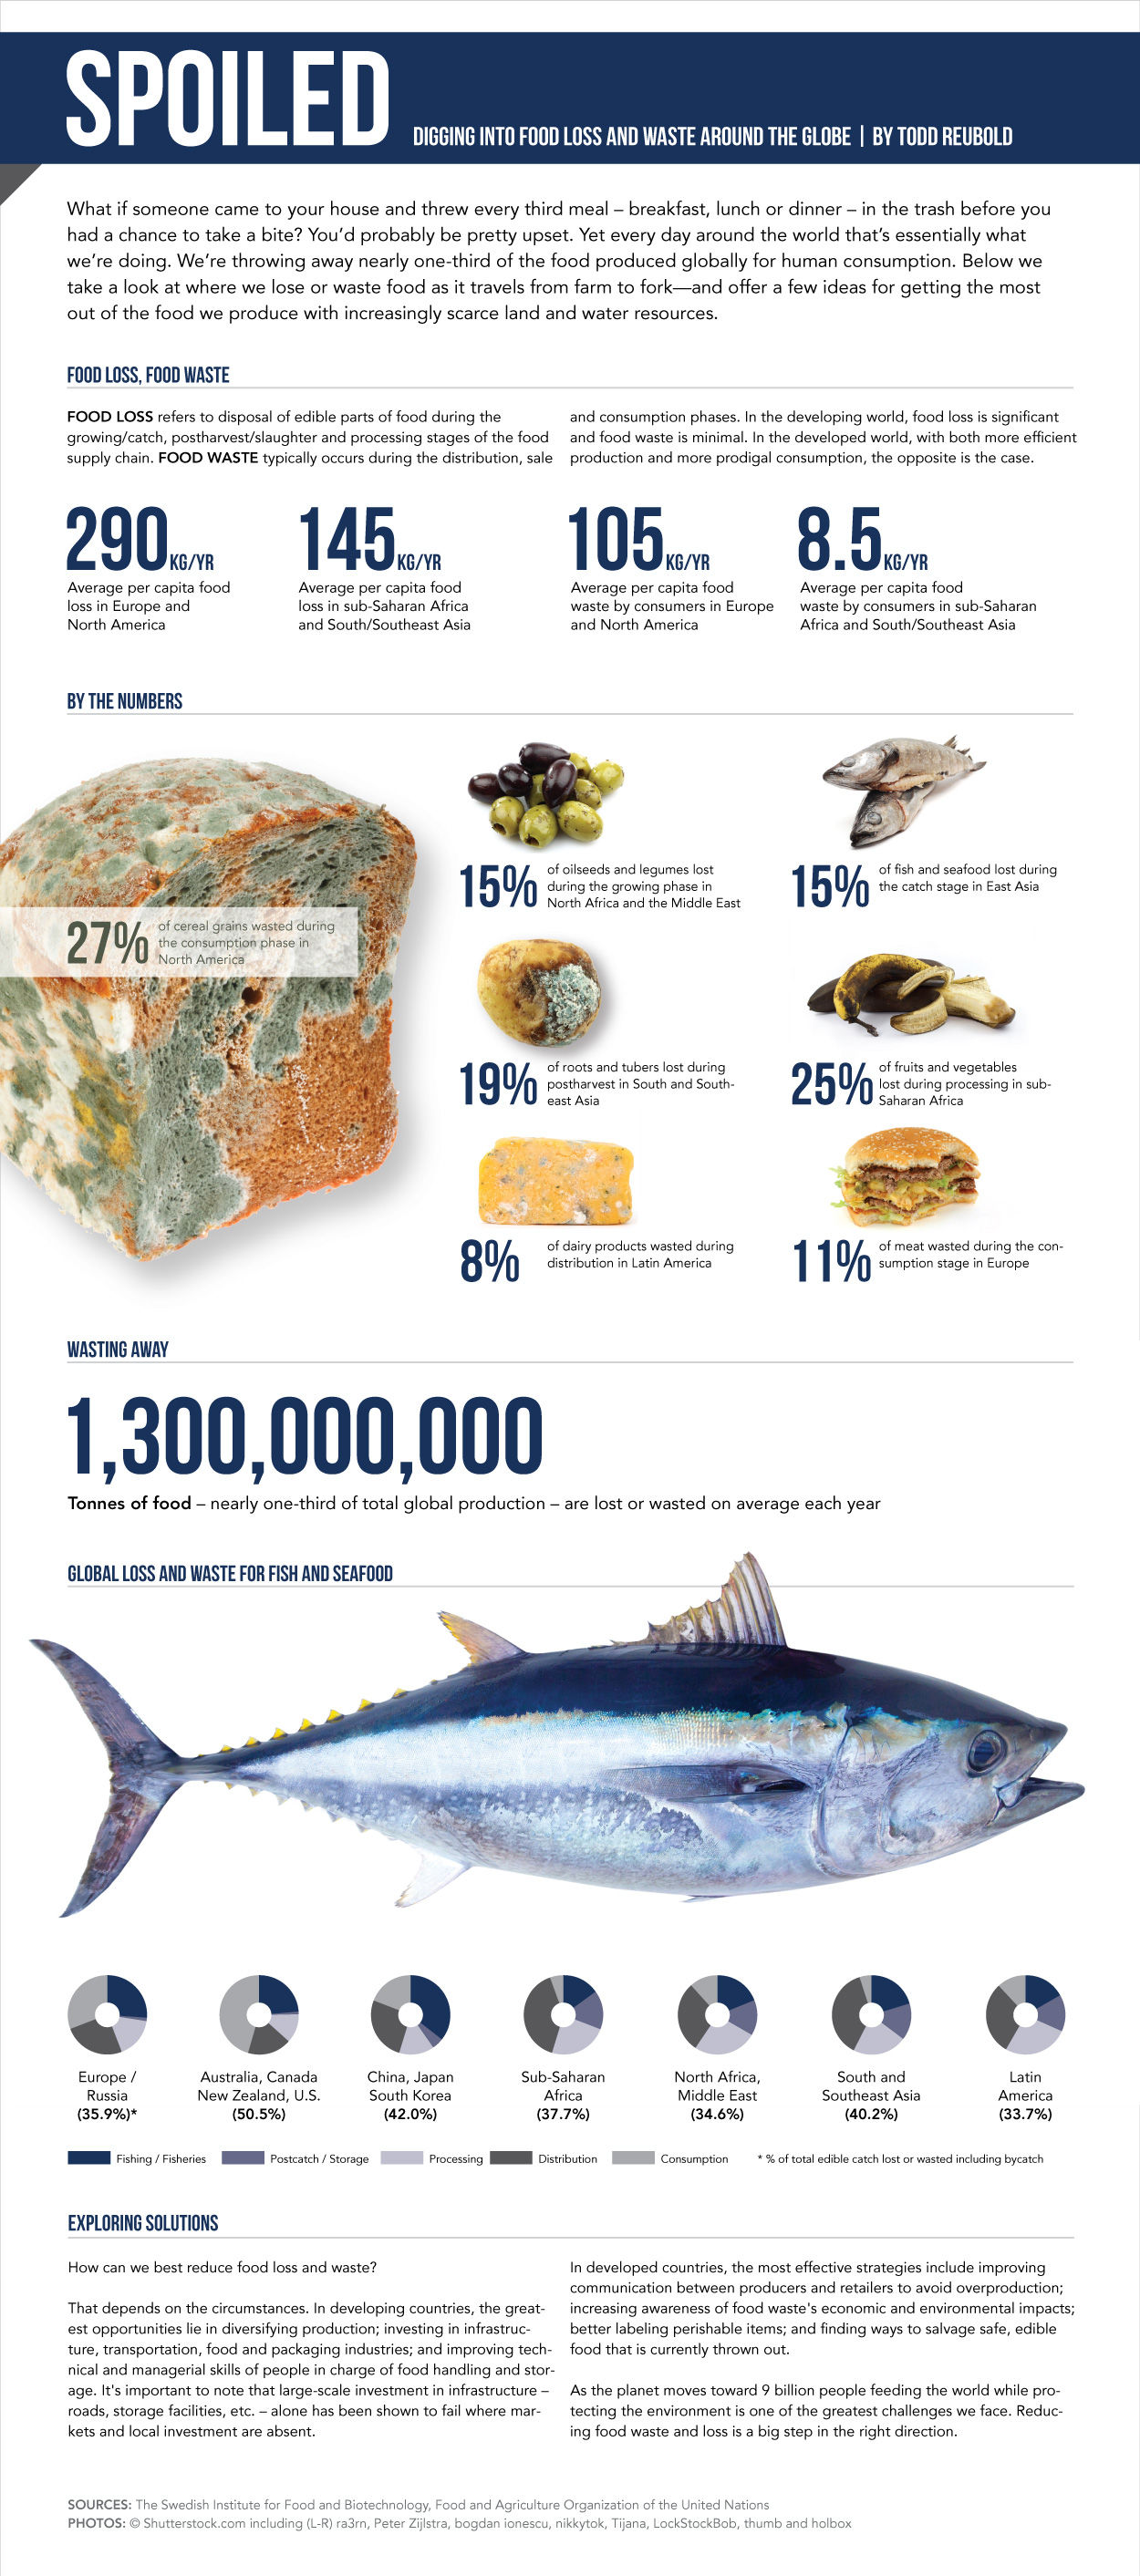 http://ensia.com/infographics/food-waste